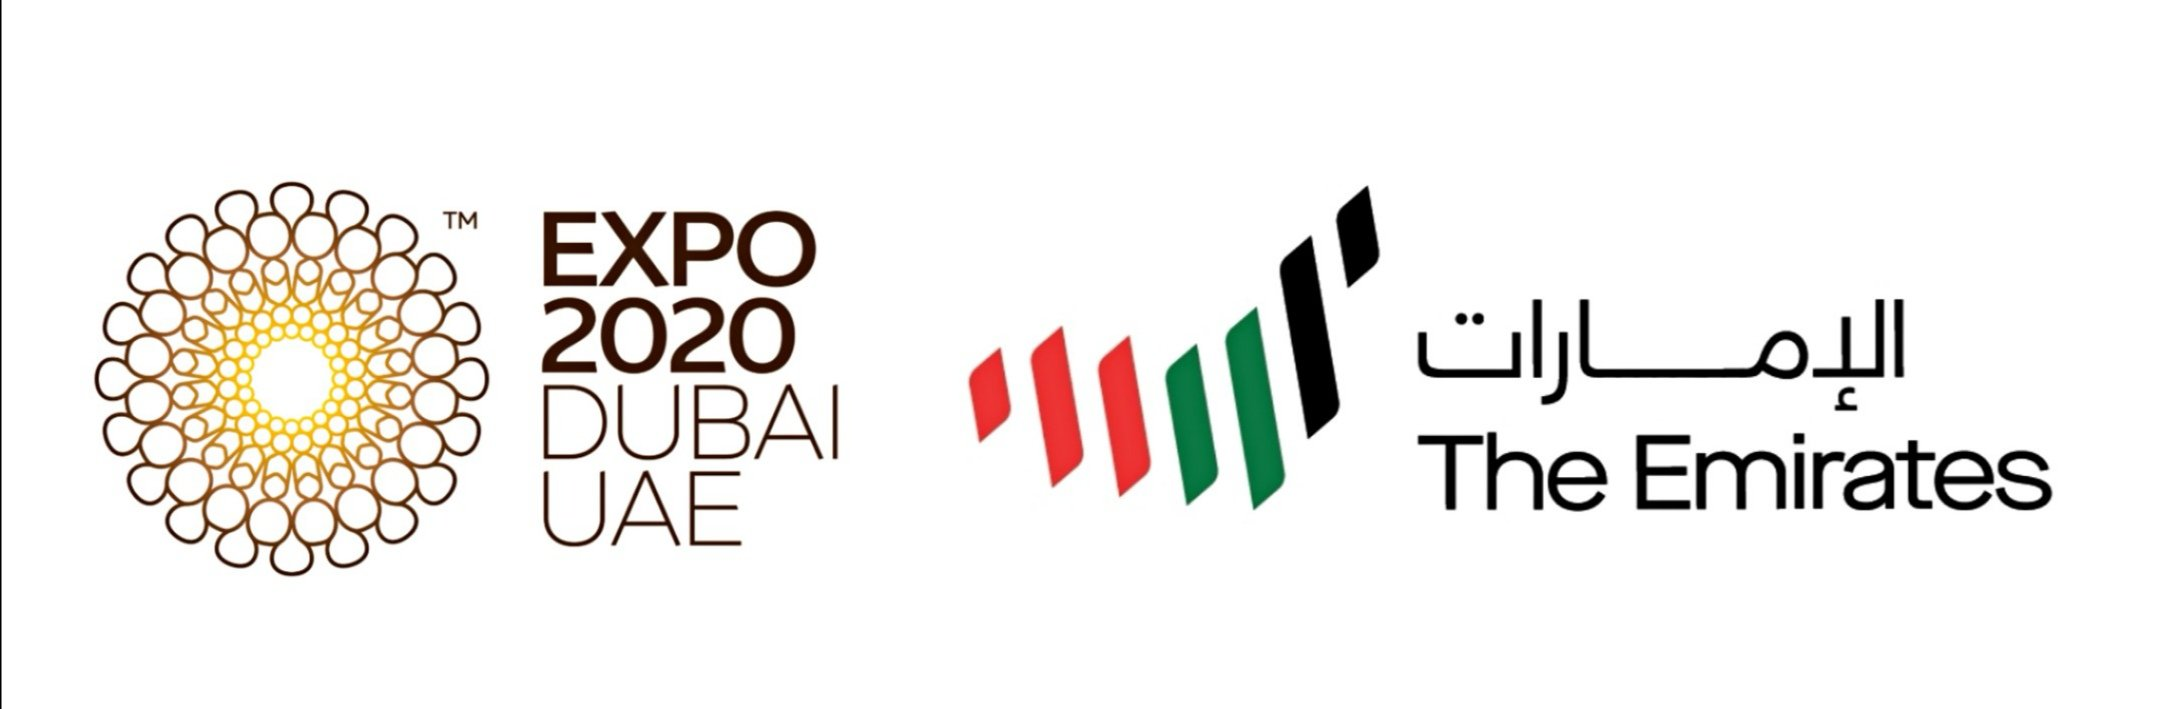 imports and exports in UAE - Expo2020